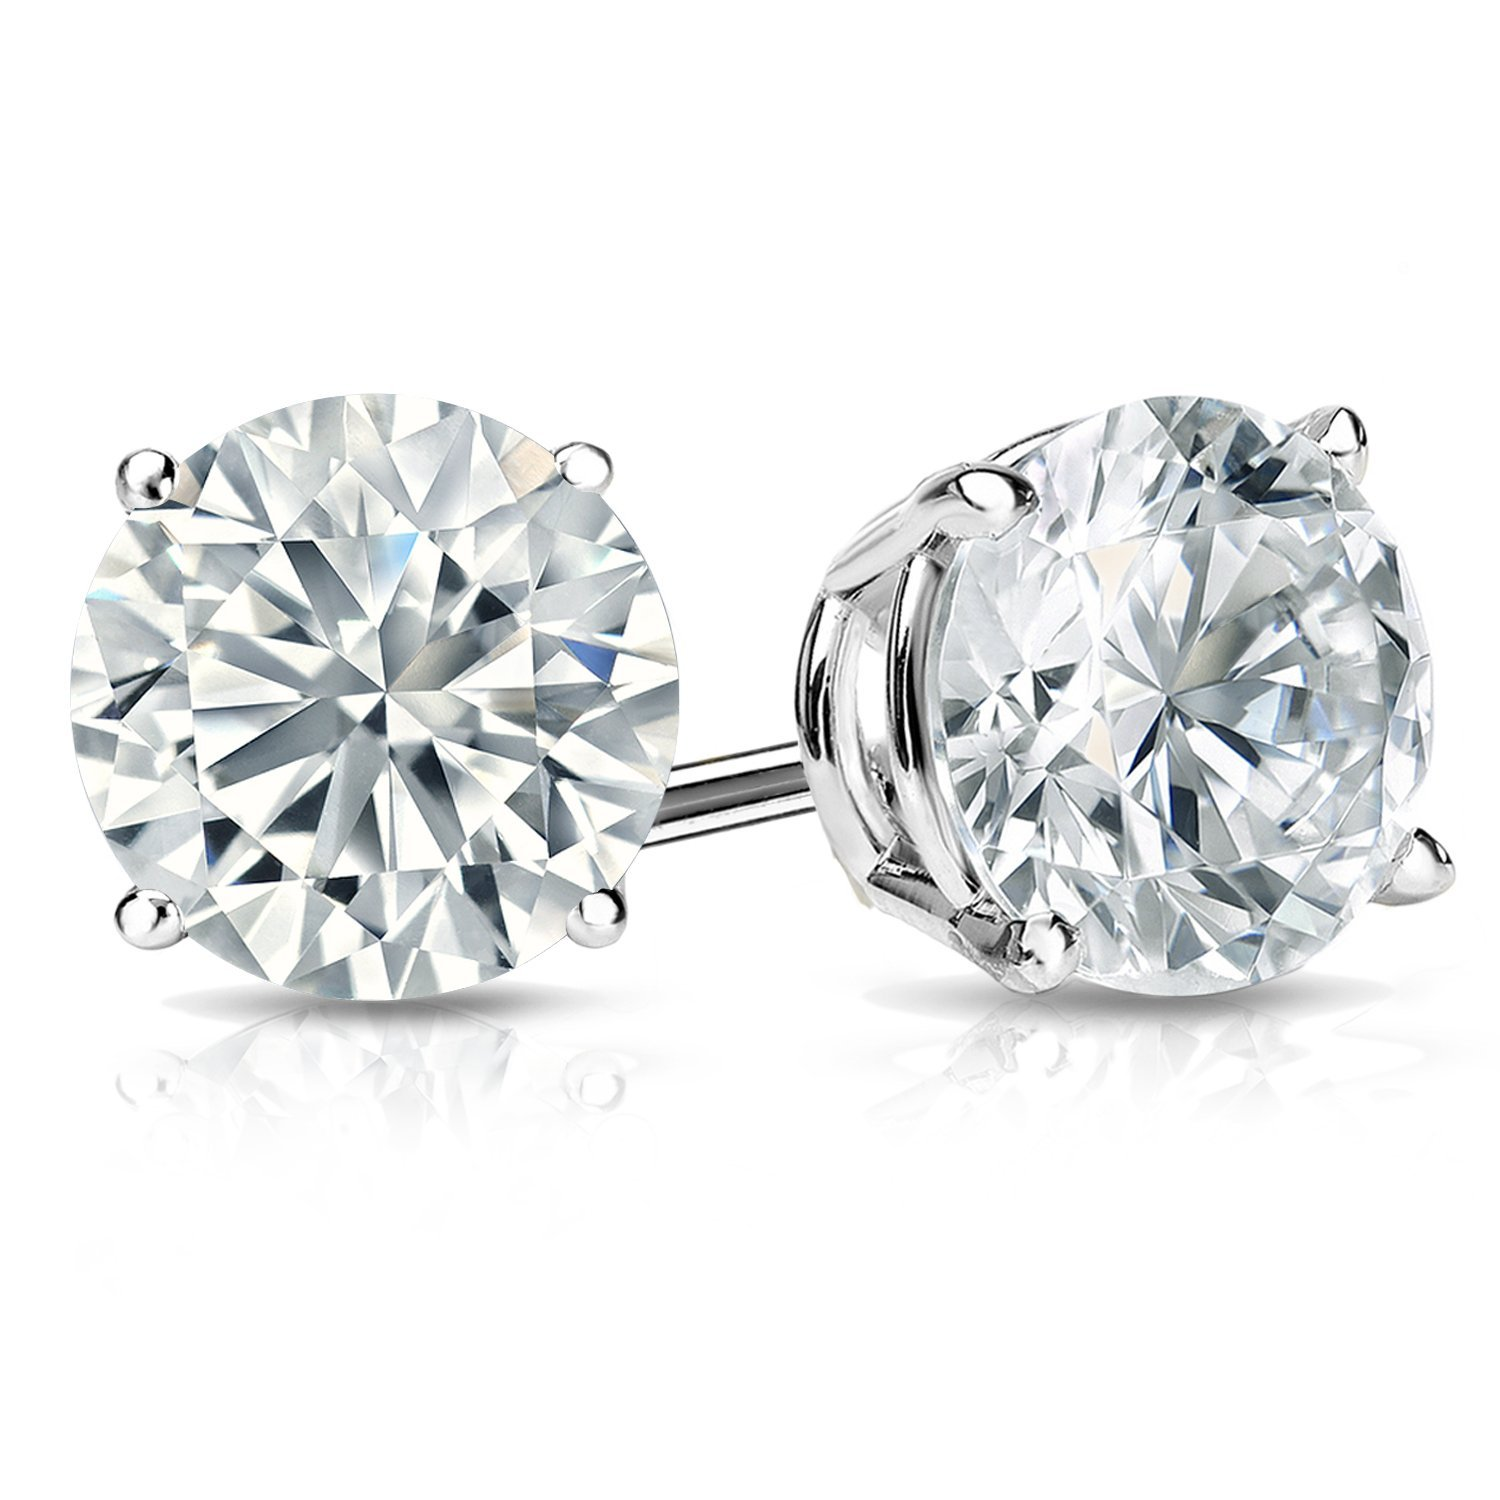 s stud main zirconia earrings nadri nordstrom round cubic